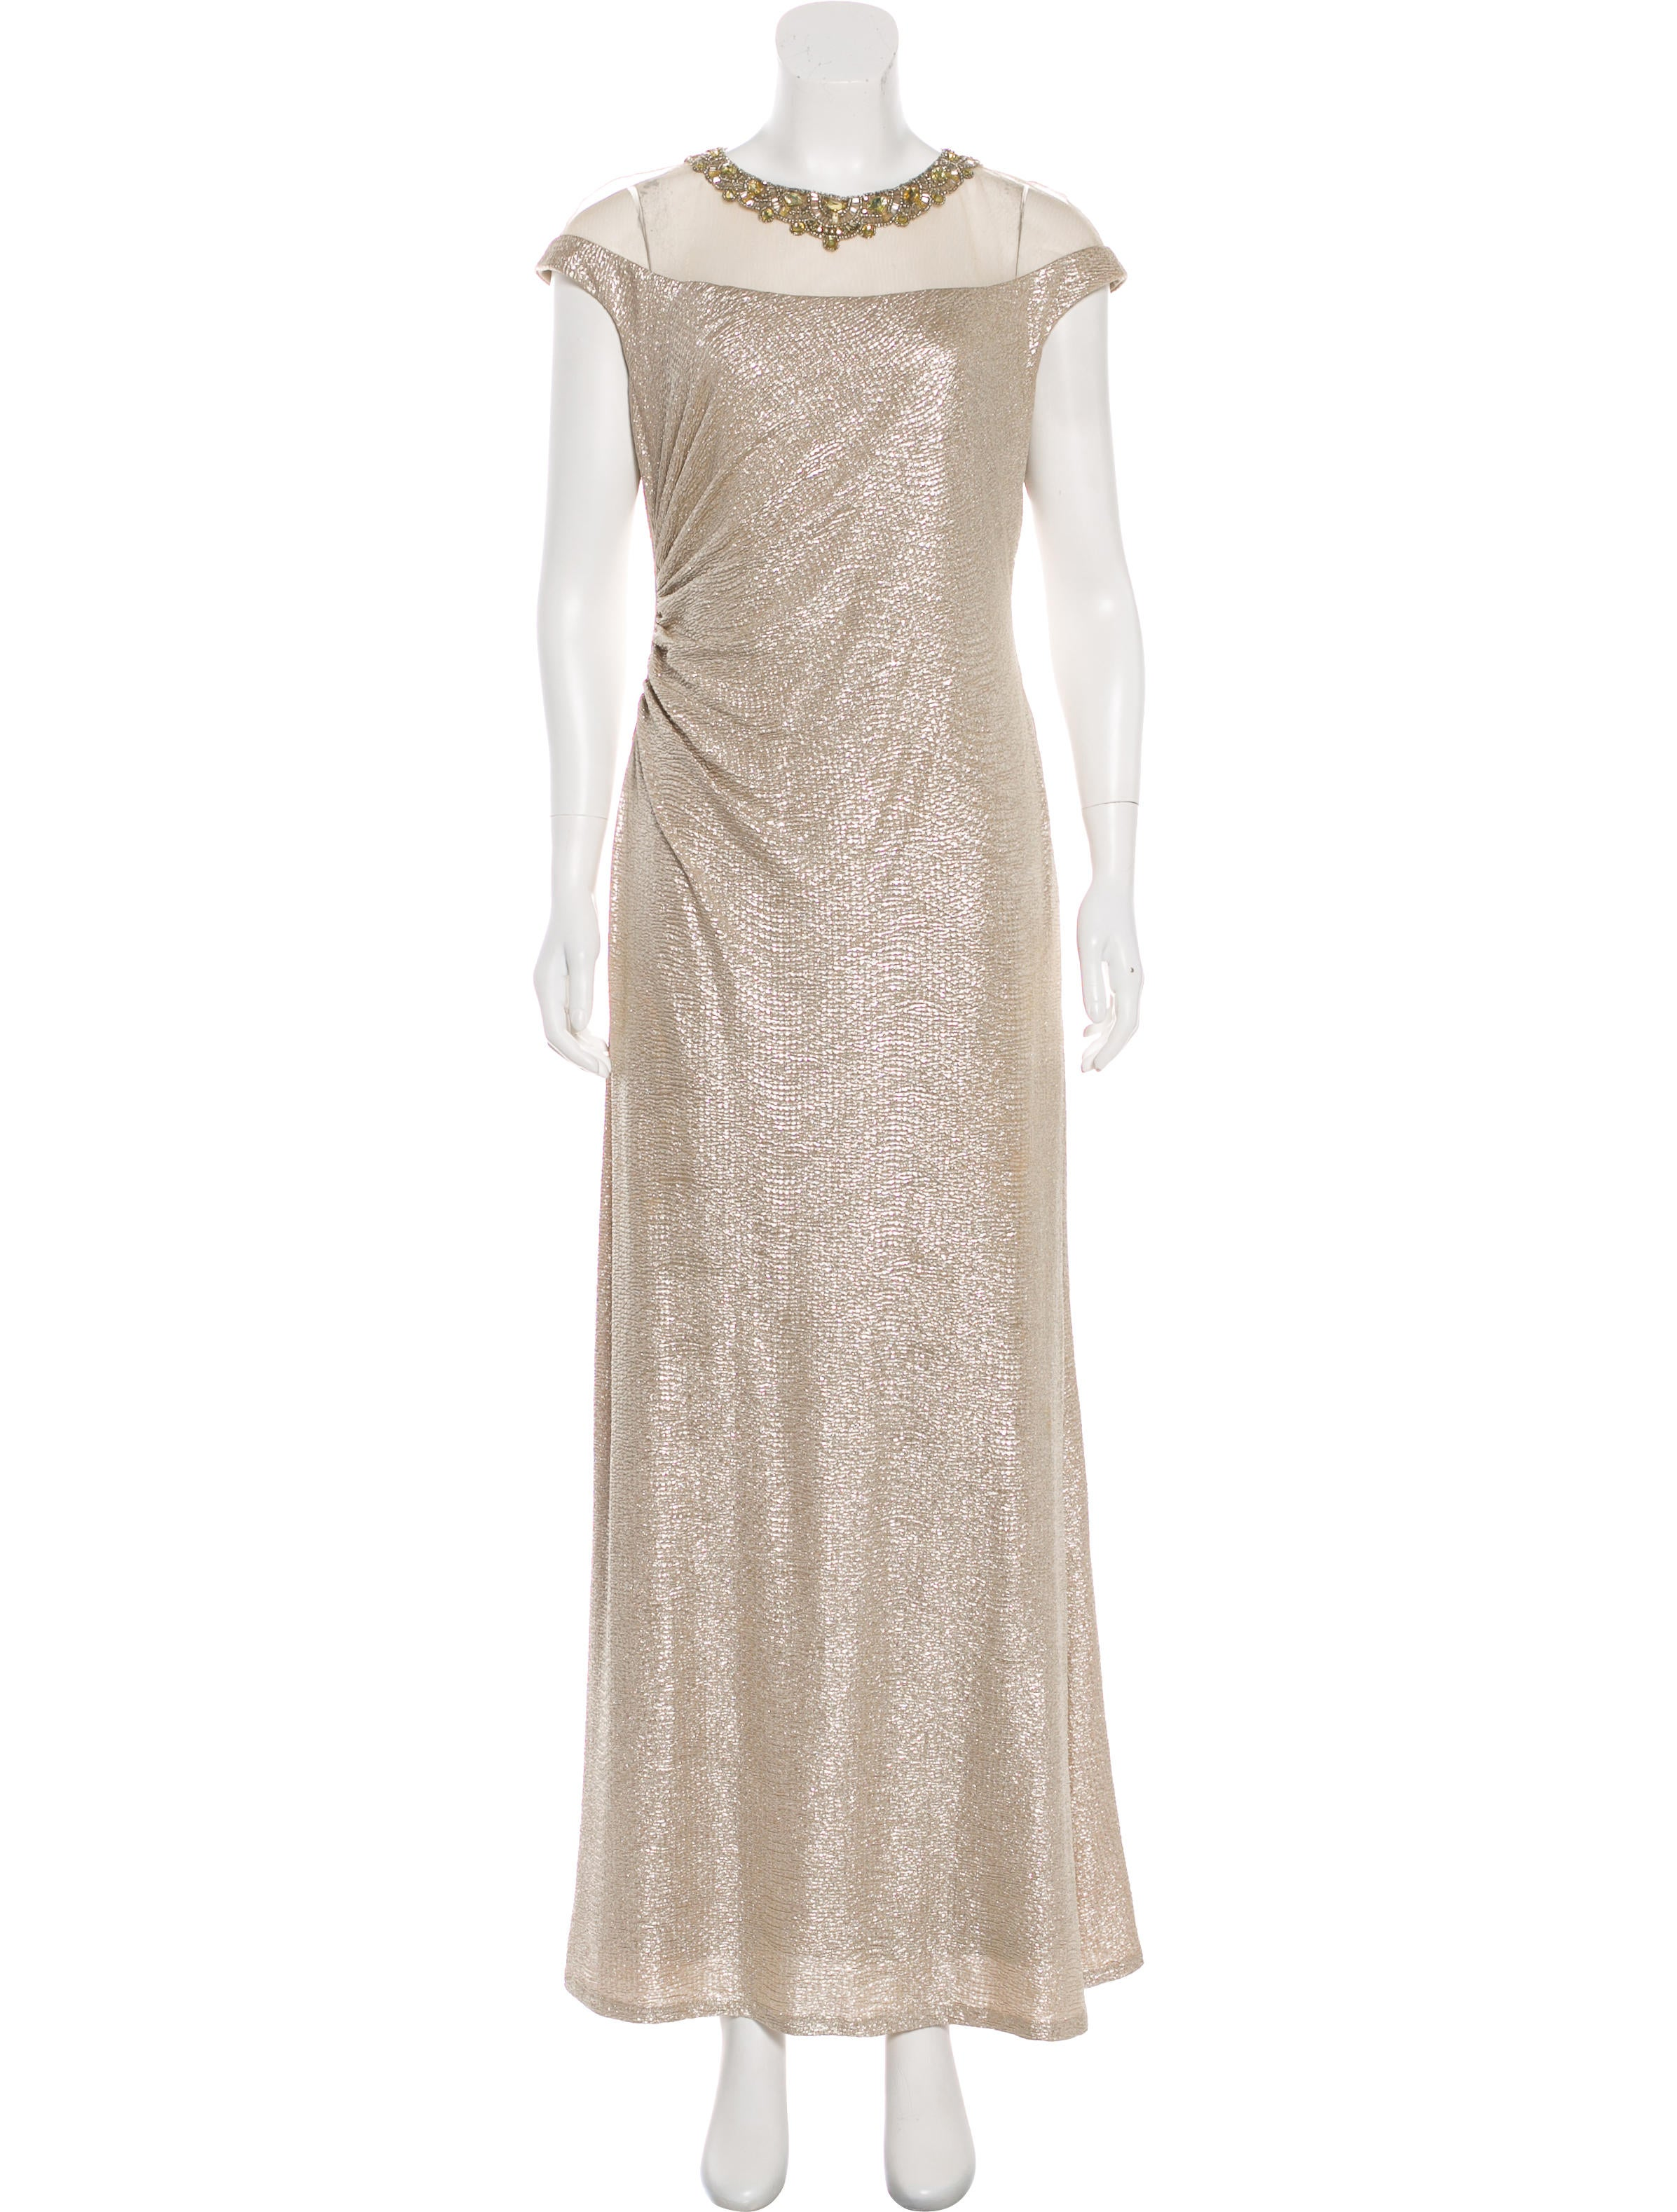 David Meister Beaded Metallic Gown - Clothing - WDM25594 | The RealReal